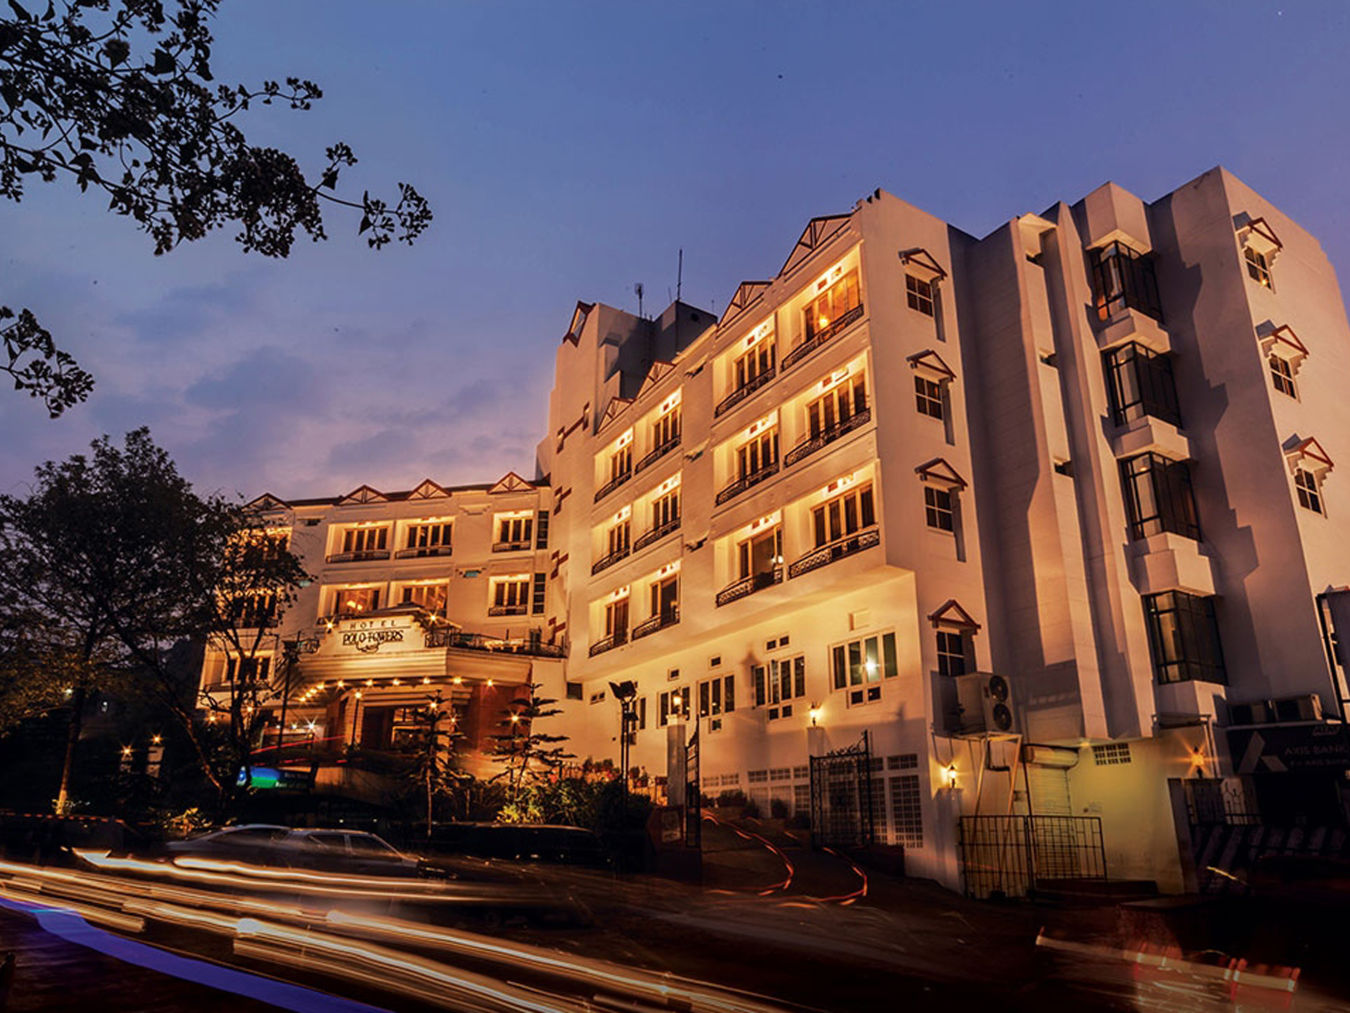 Exterior view of our hotel in Shillong, Hotel Polo Towers, Shillong- 23